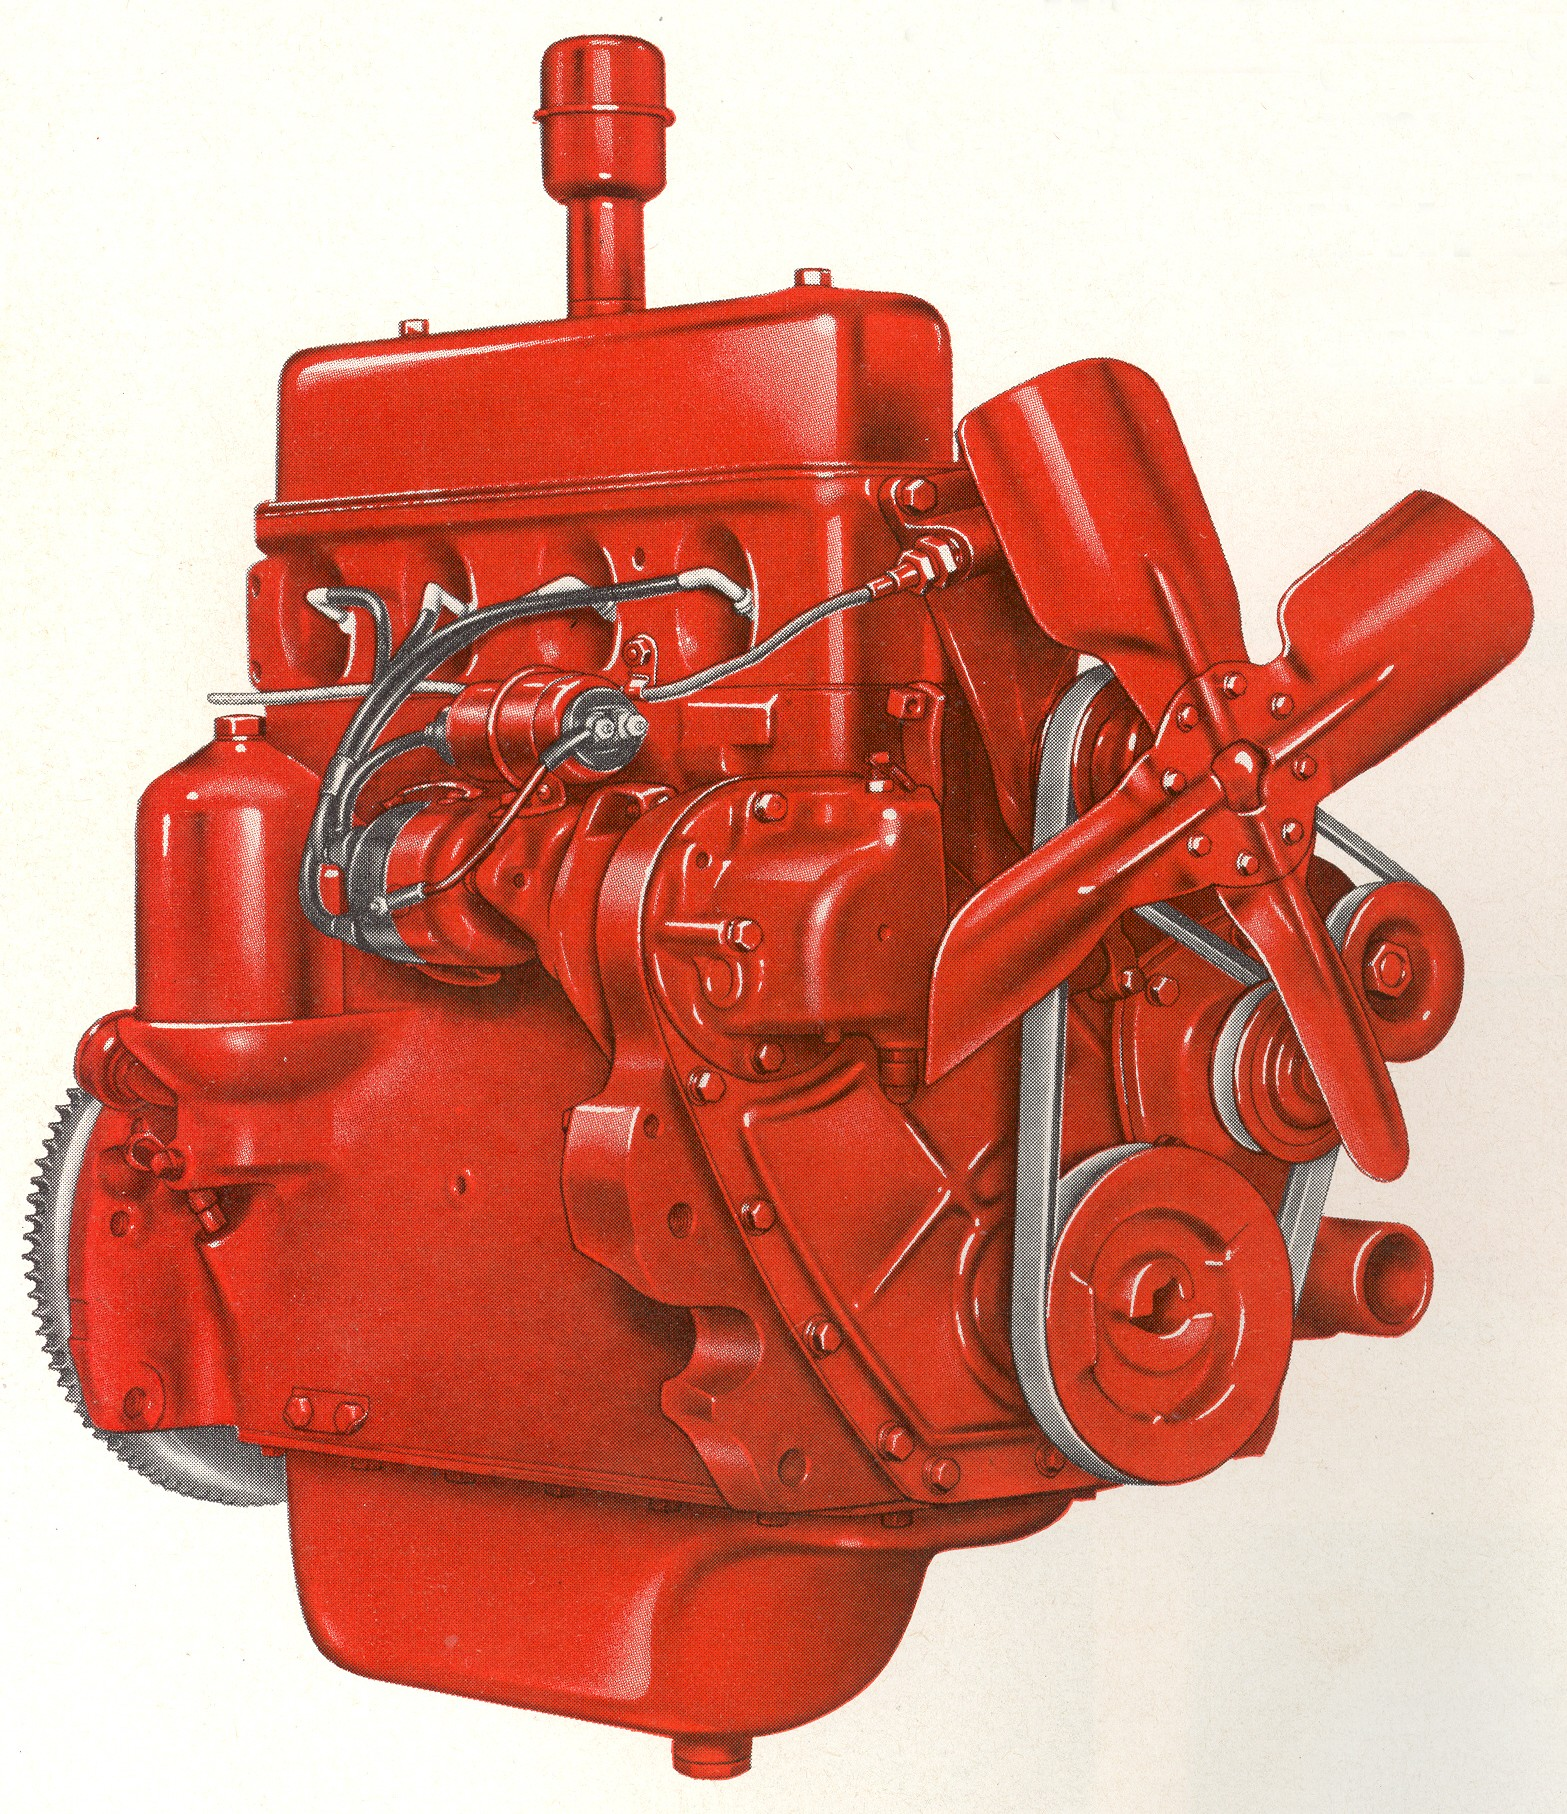 Four Engine Tractor : List of international harvester engines tractor